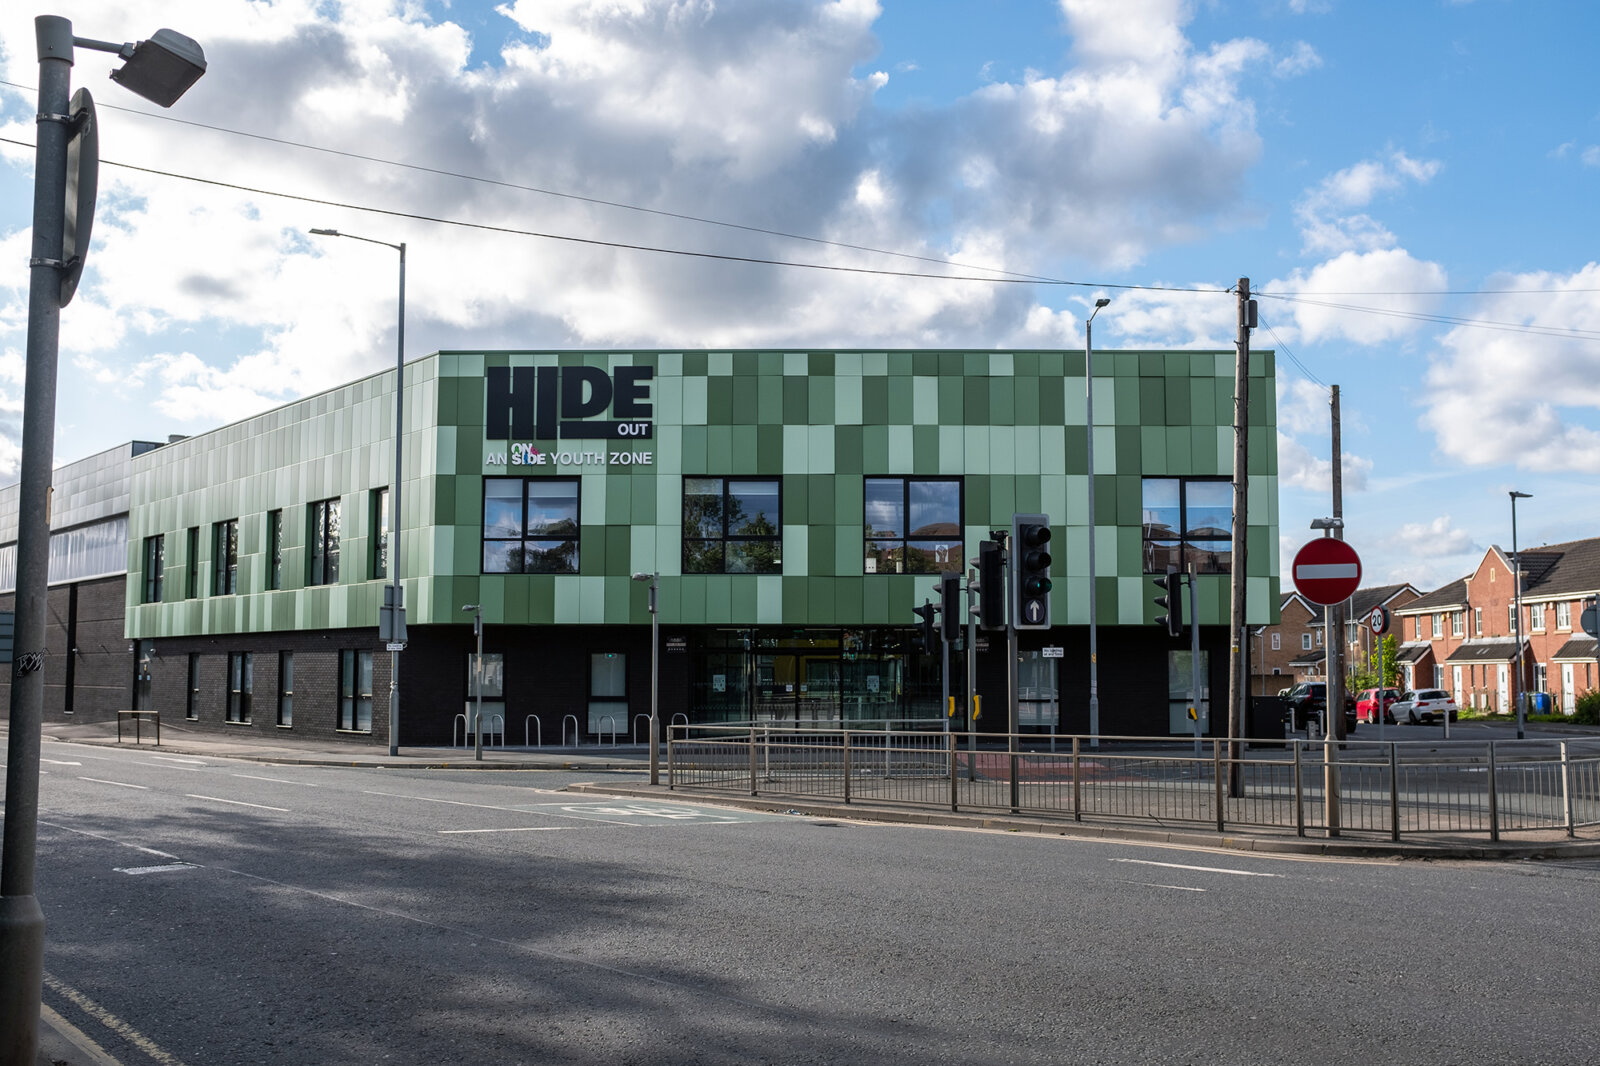 This incredible new youth  centre is everything Manchester's inner-city needs, The Manc